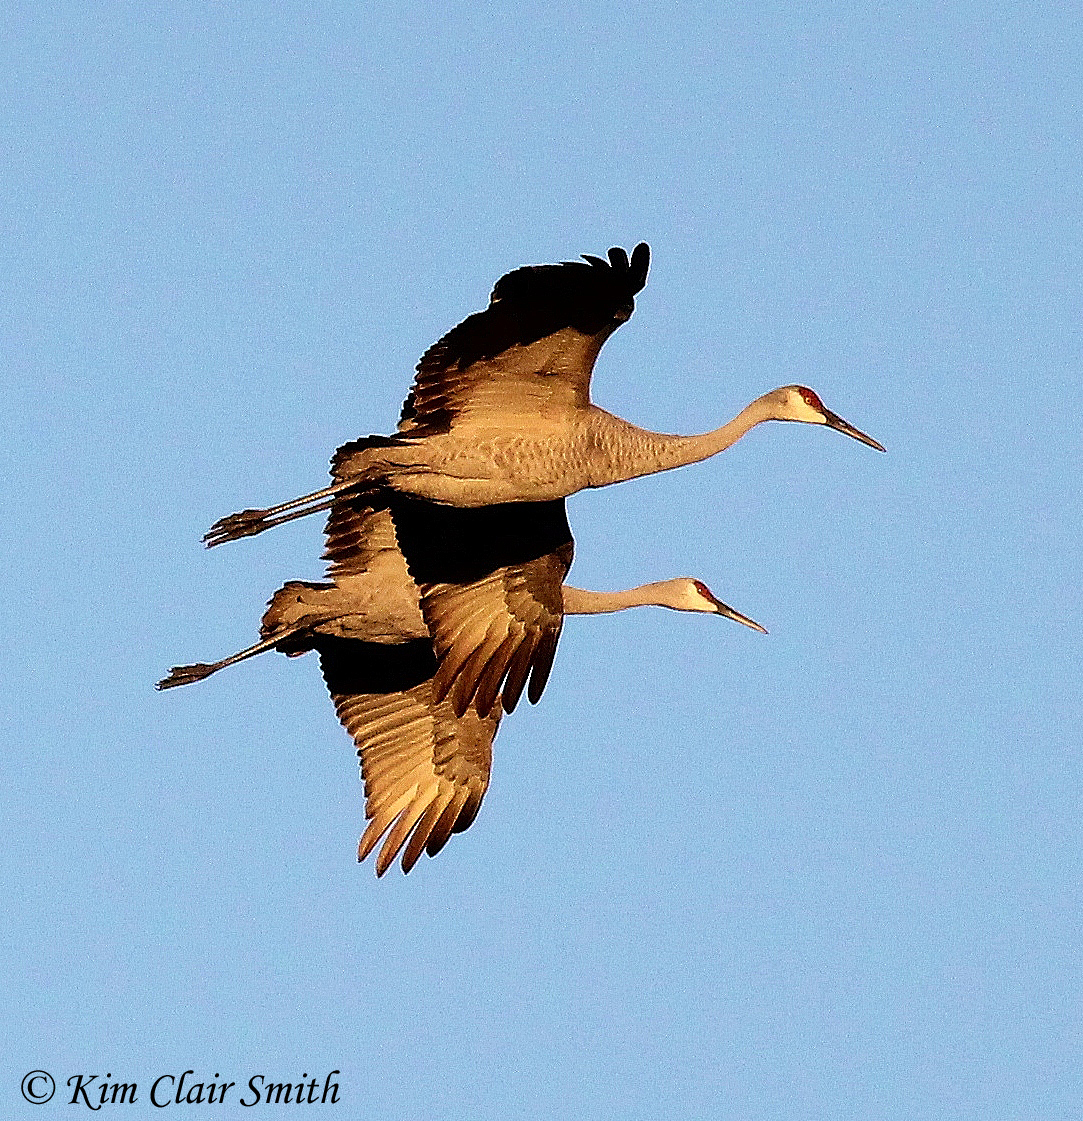 Two cranes in formation